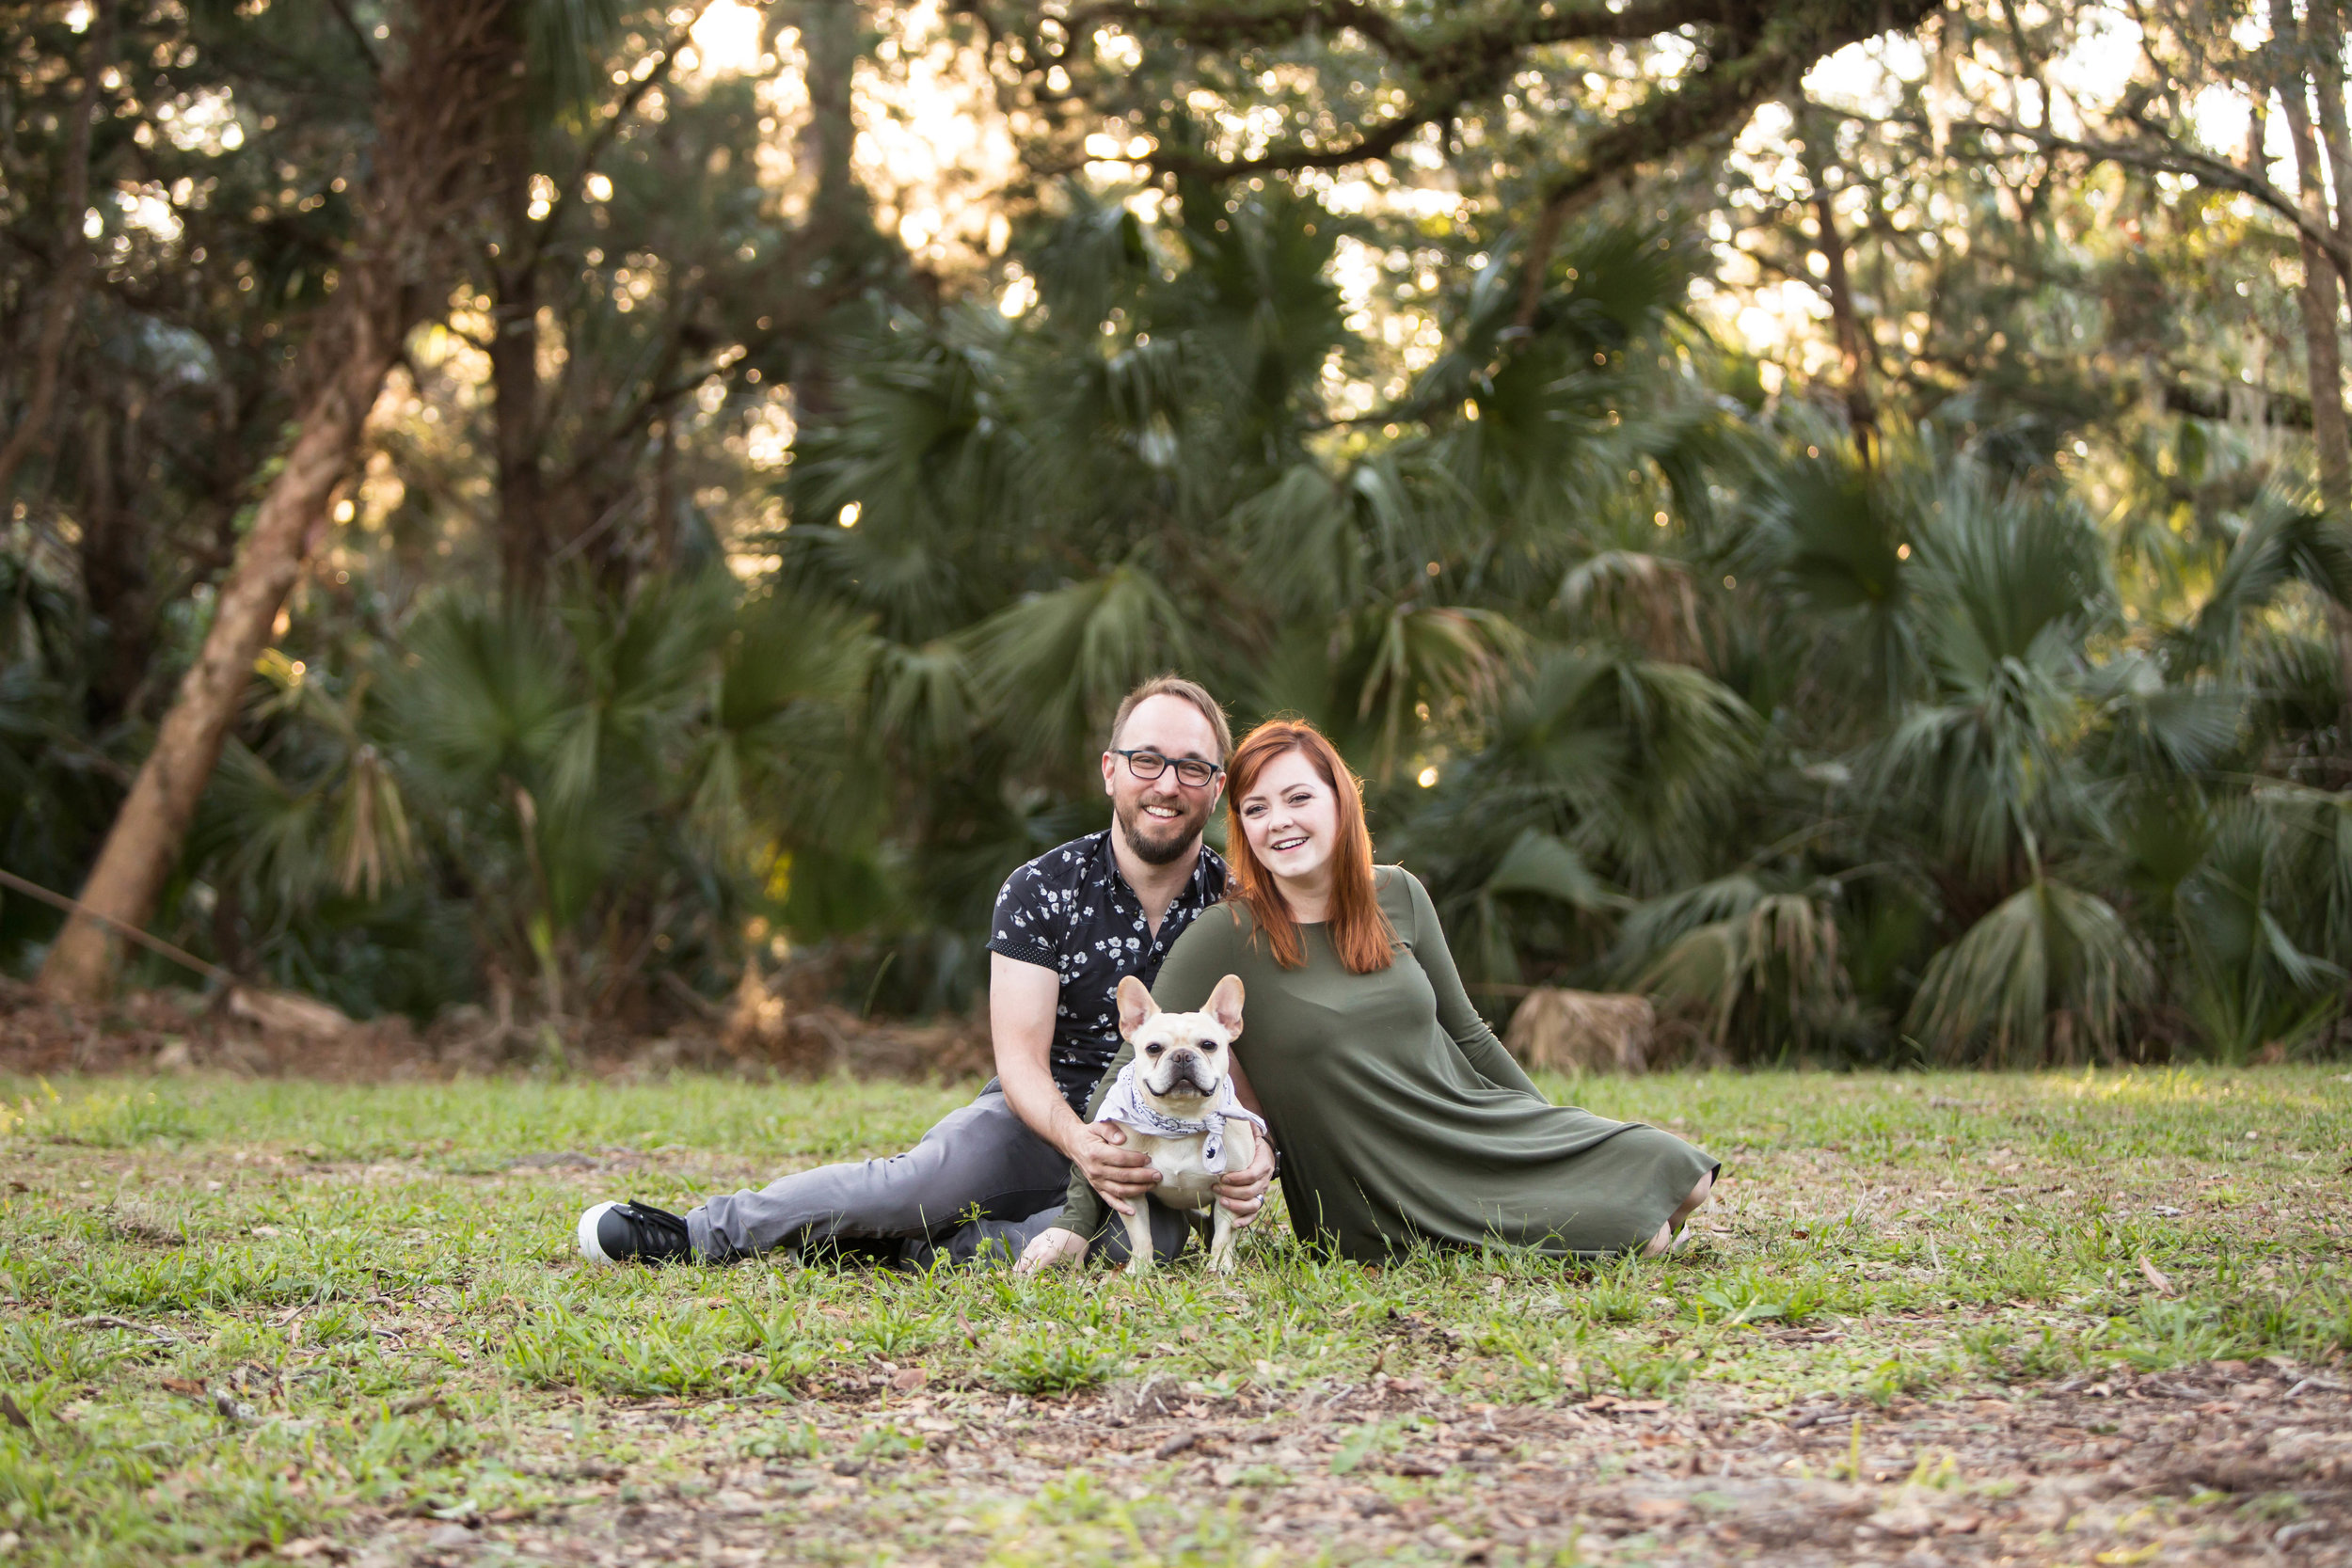 Marble_Falls_Anniversary_Photographer_Jenna_Petty_Ormond_Beach_Florida_06.jpg